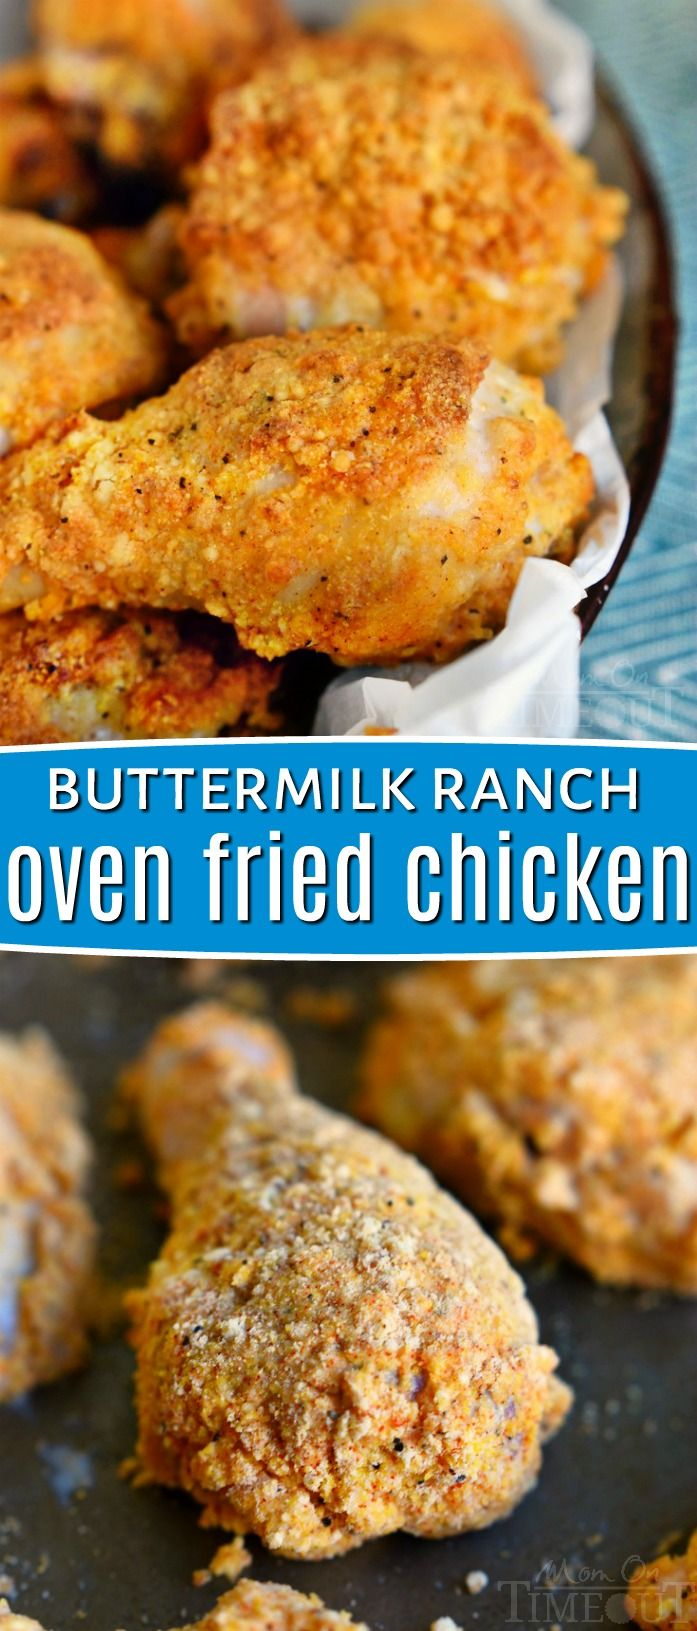 Buttermilk Ranch Oven Fried Chicken Best Chicken Recipes Oven Fried Chicken Recipes Oven Fried Chicken